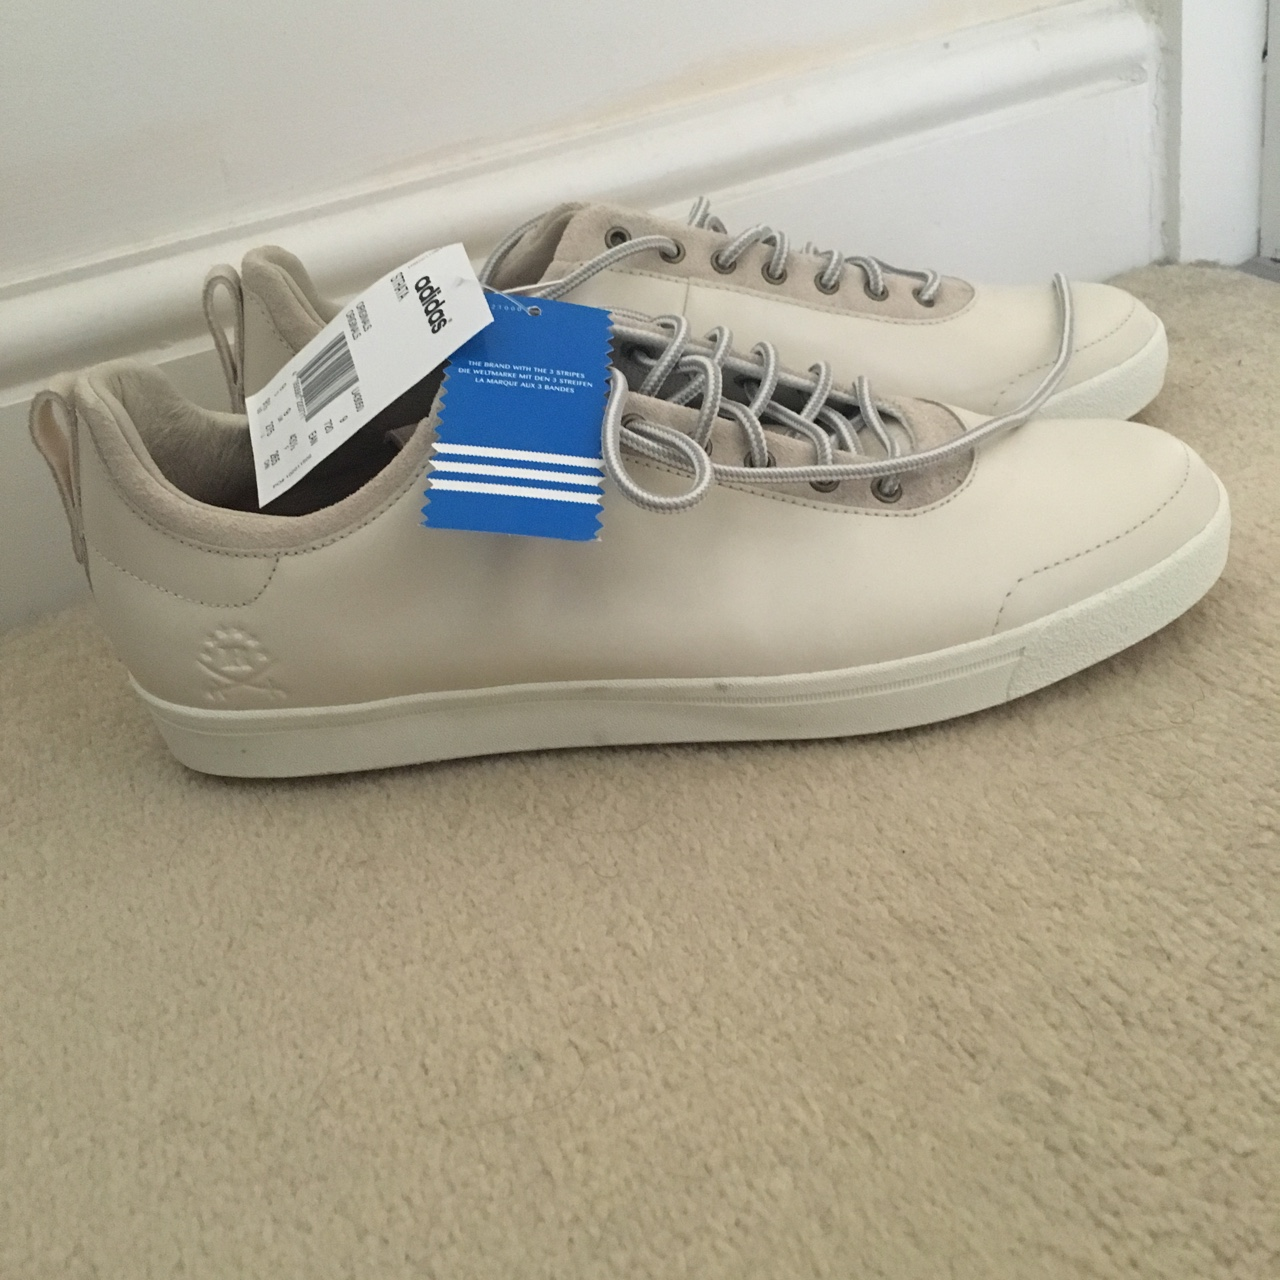 Adidas Ransom Trainers - Creme colour